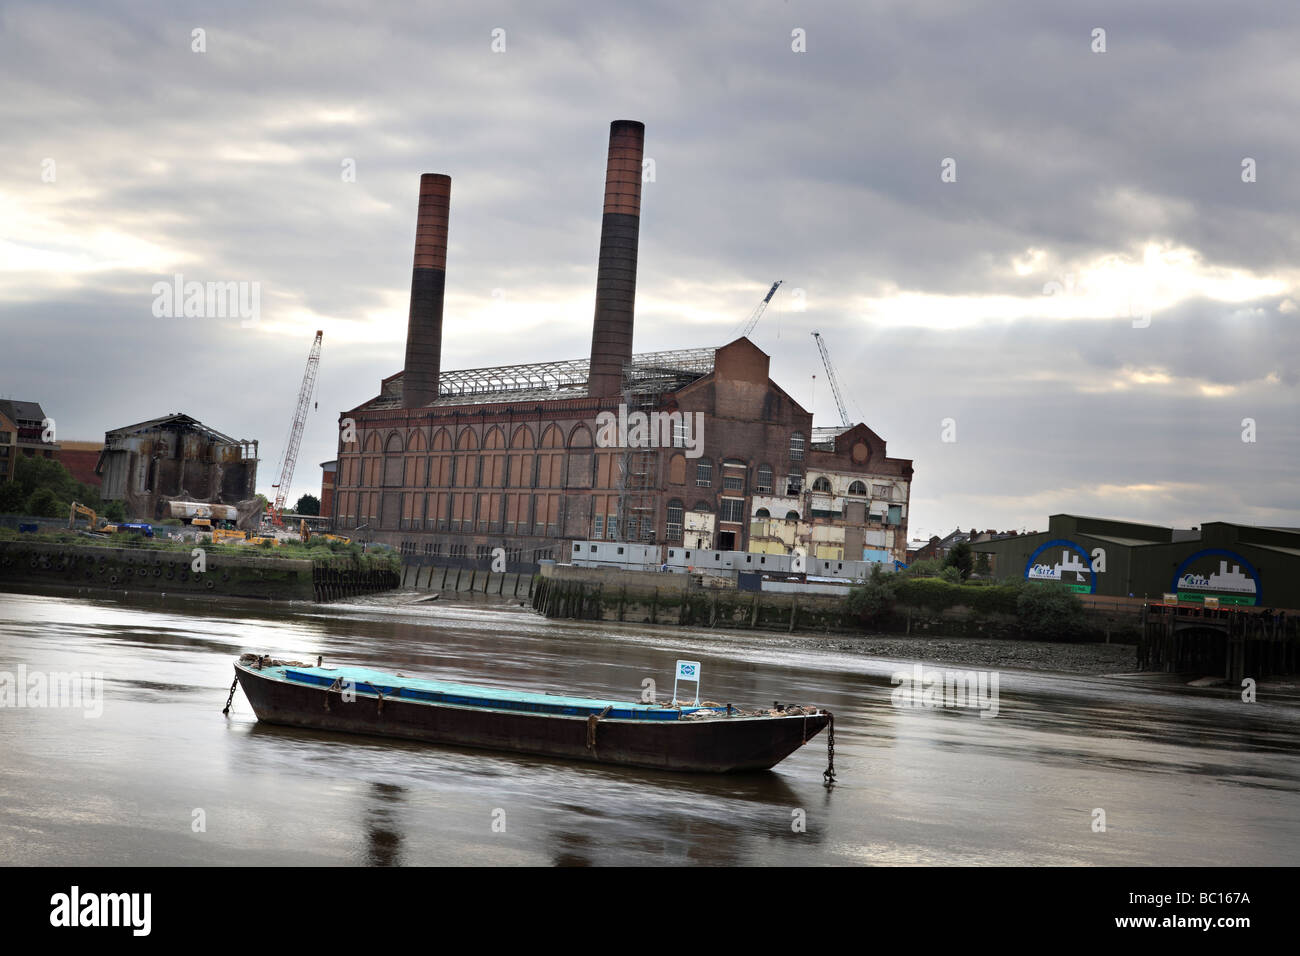 Shot of the River Thames with abandoned factory and resting boat. - Stock Image